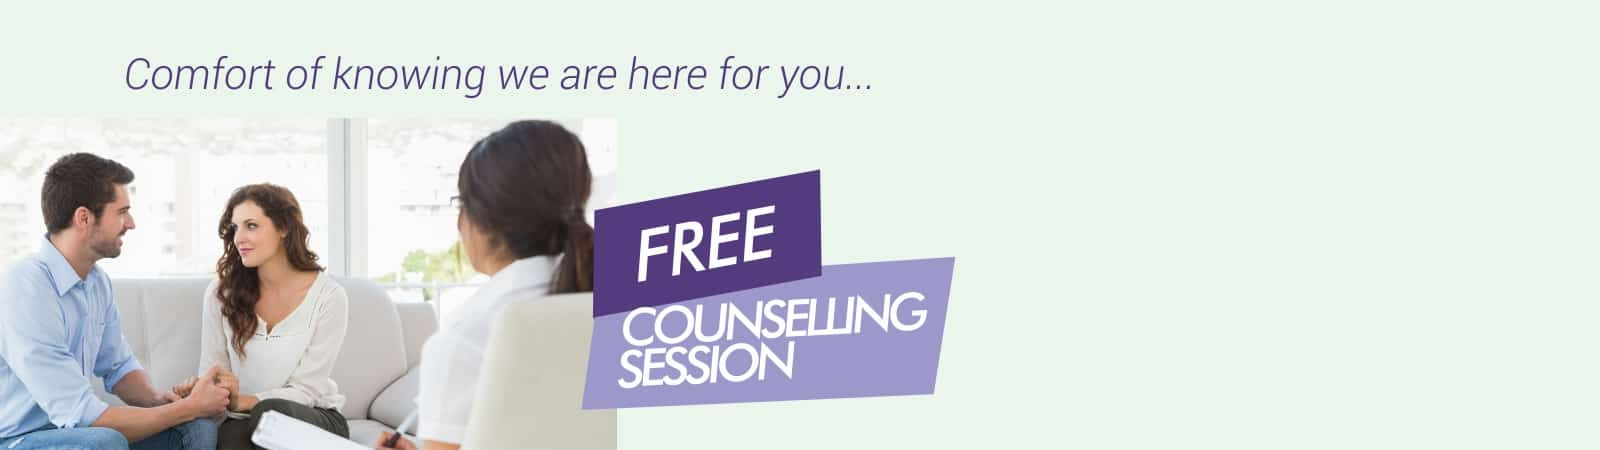 Counselling-Web-Banner